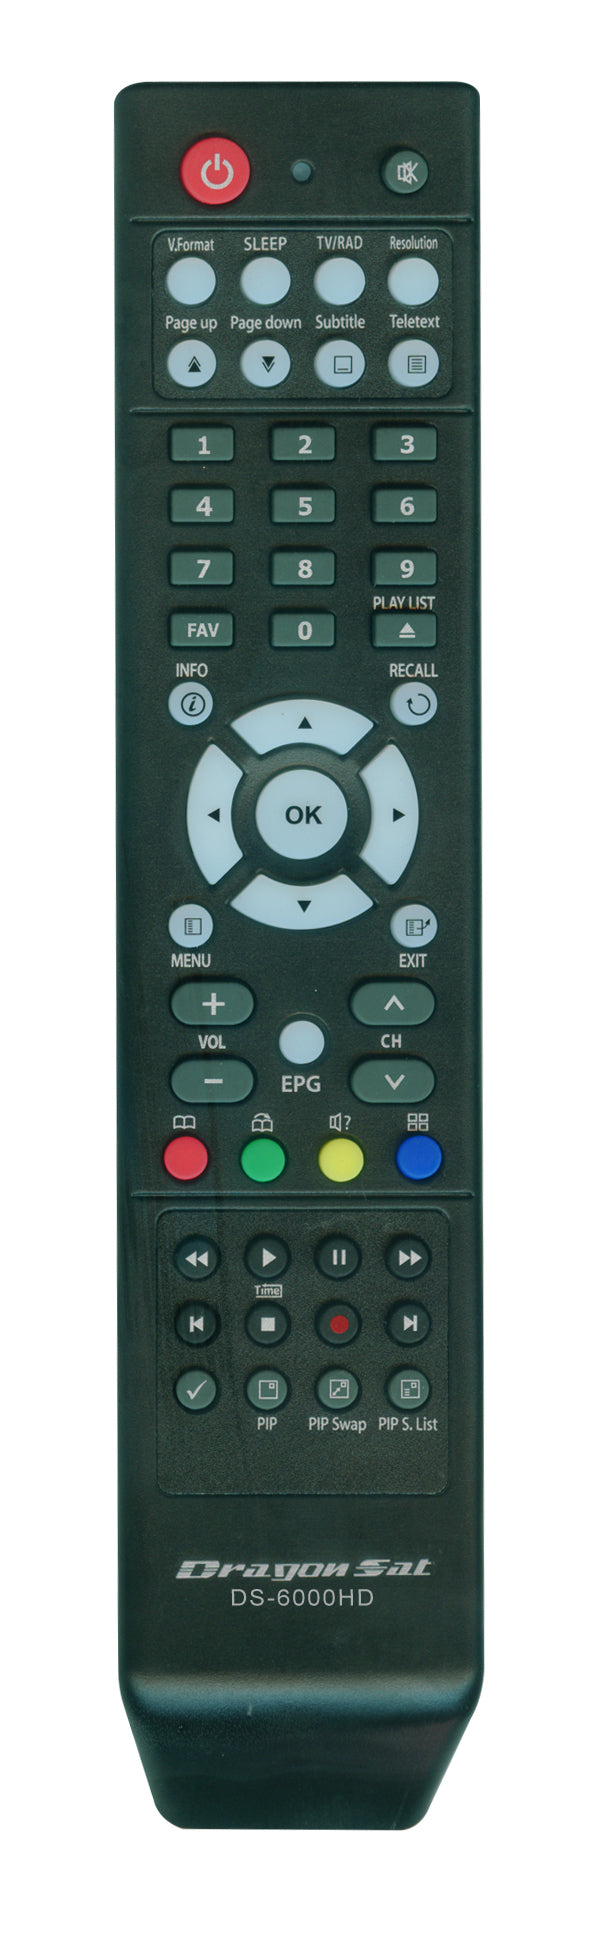 Dragonsat Replacement Remote Control